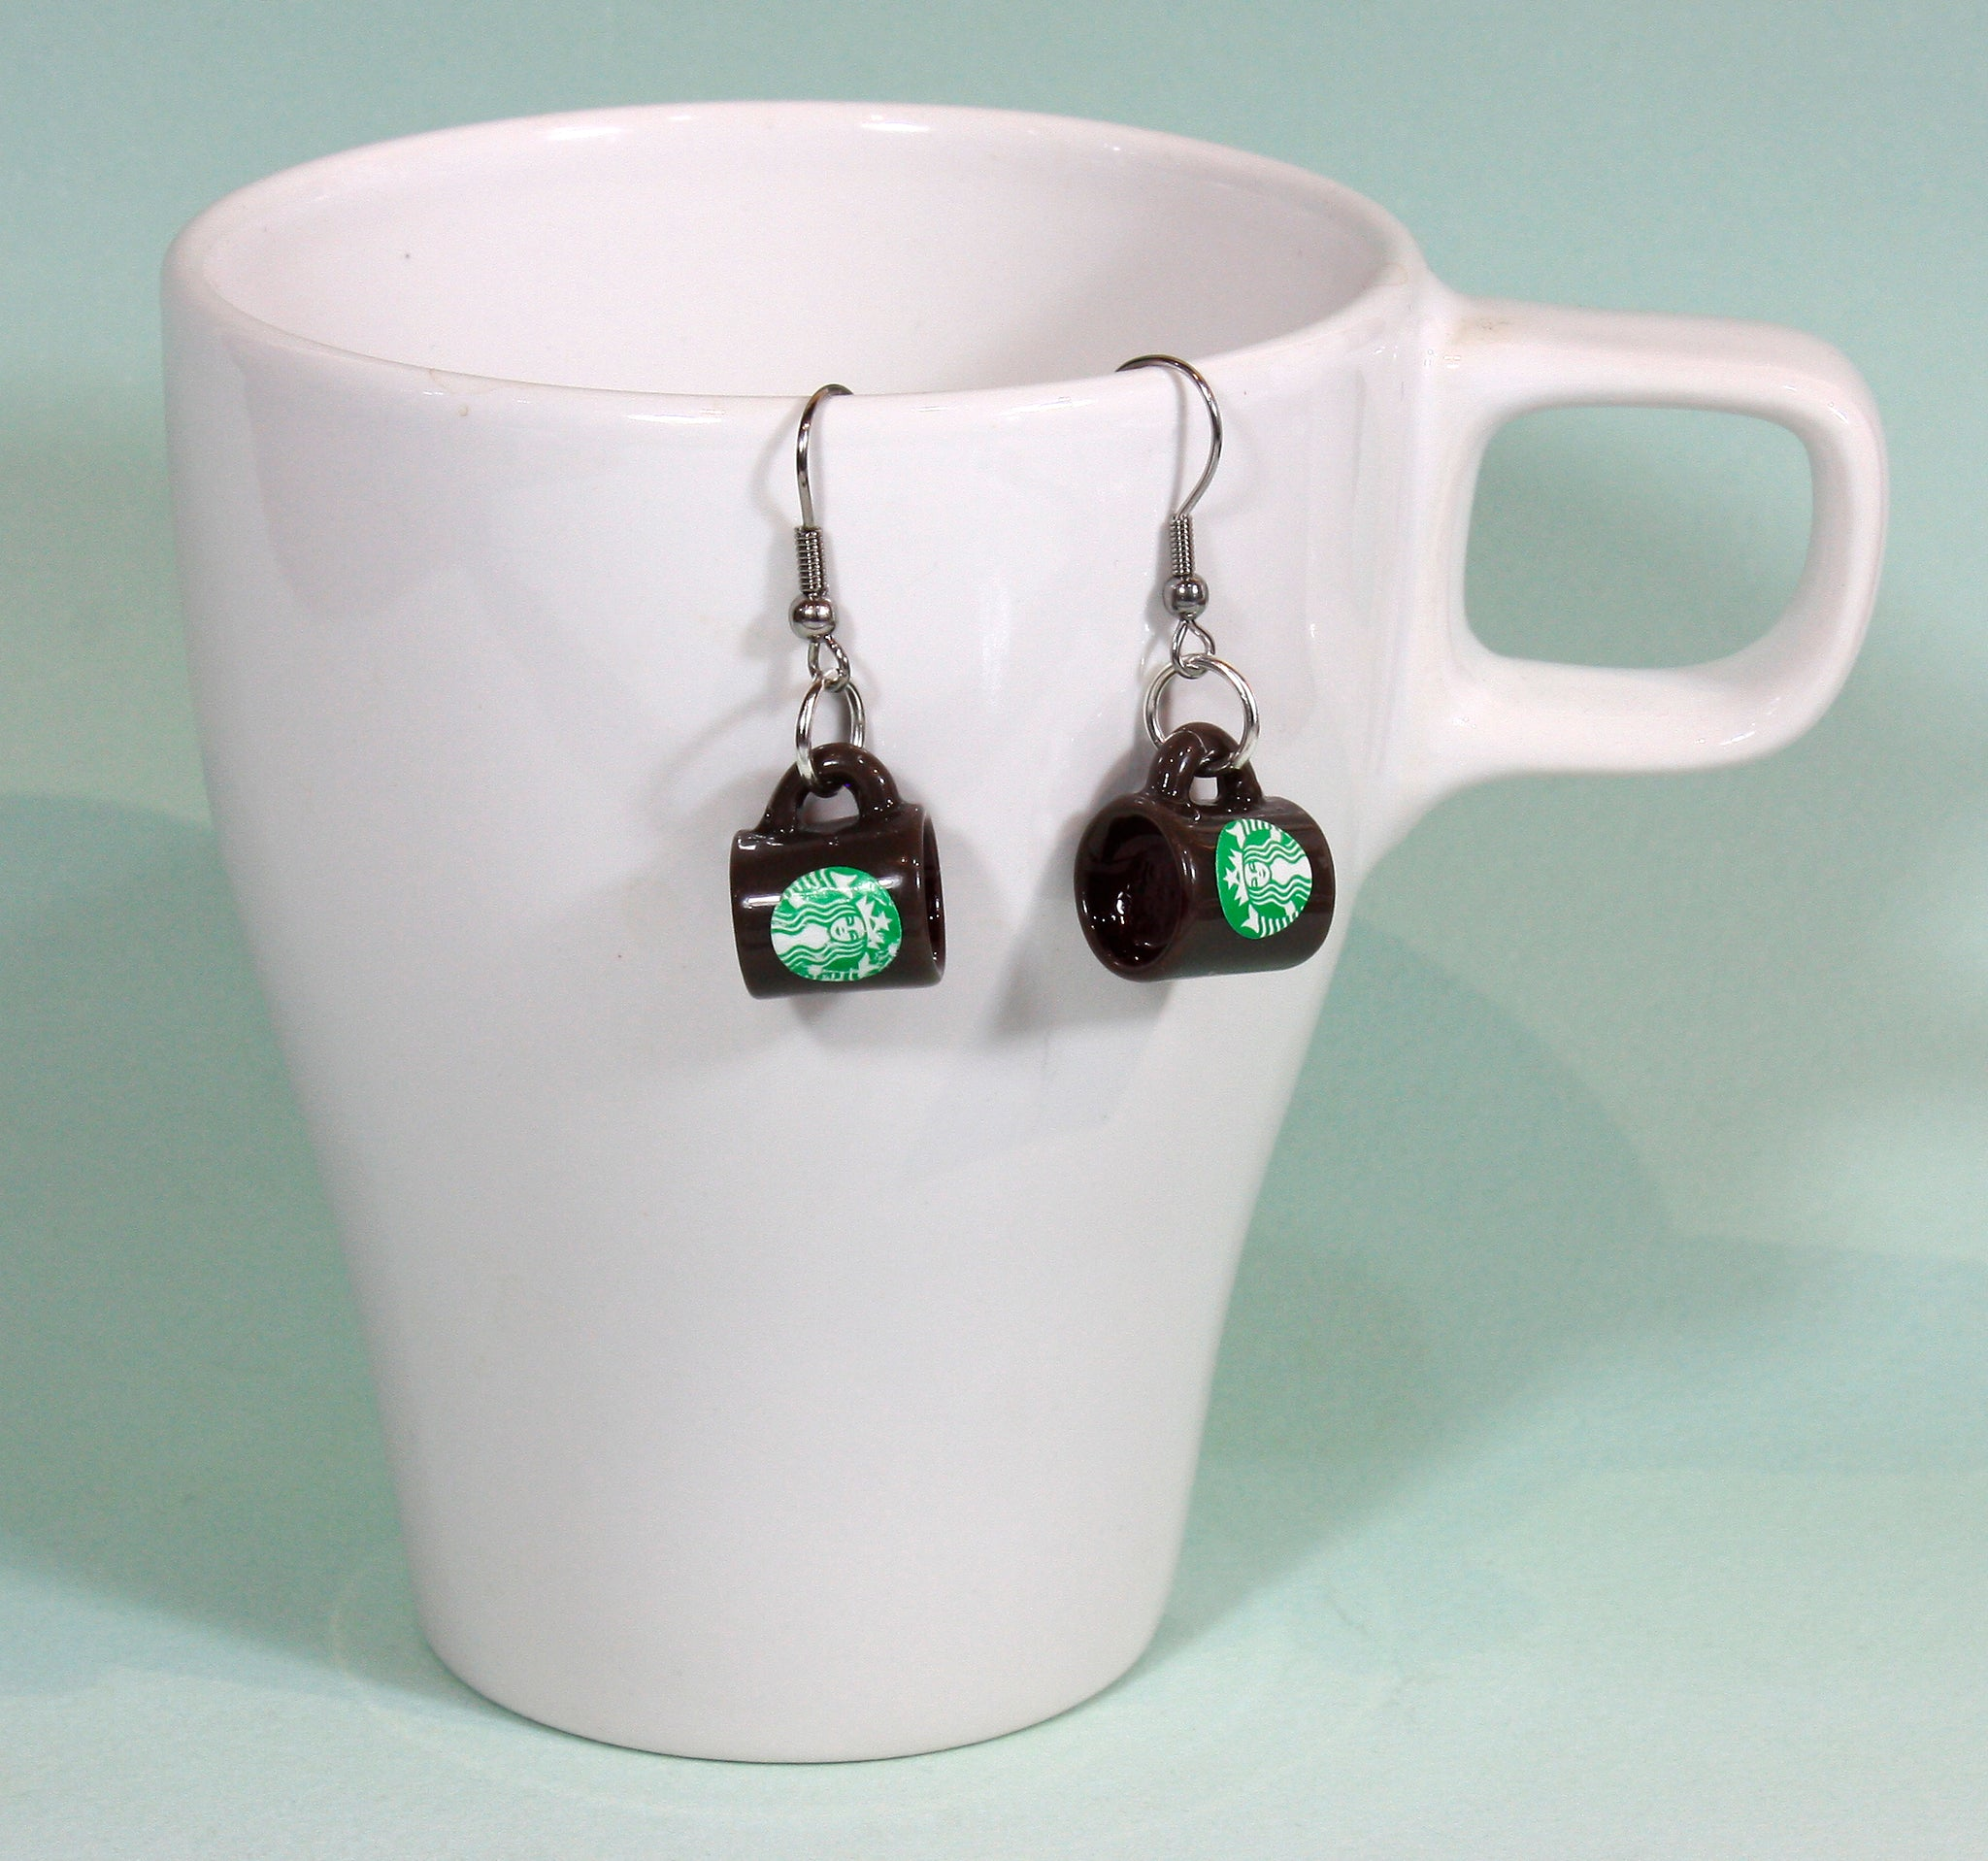 French Roast, Dark Brown Coffee Cup Earrings with Starbucks Logo